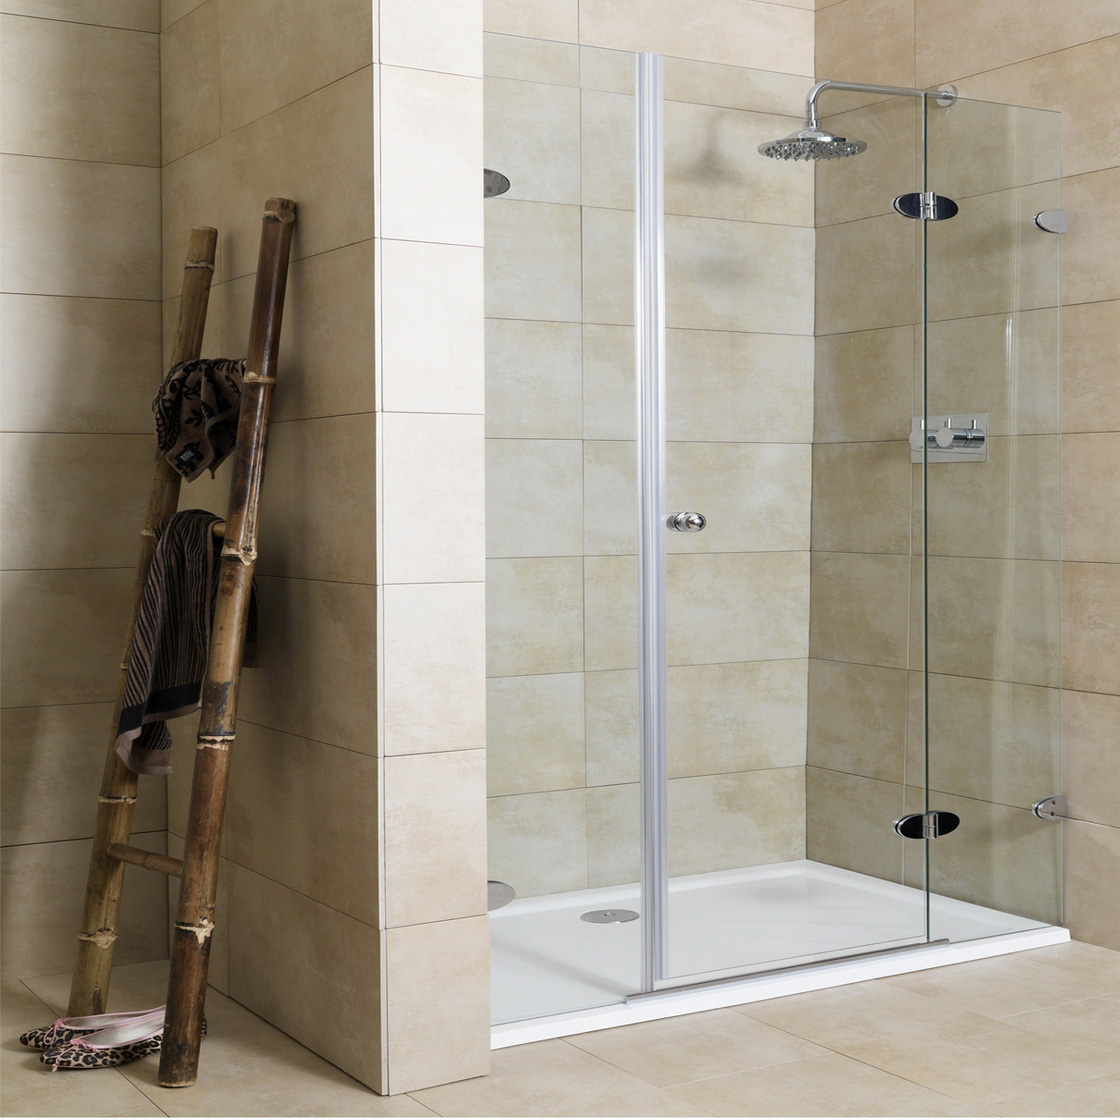 : modern contemporary shower glass doors frameless small ensuite shower room ideas